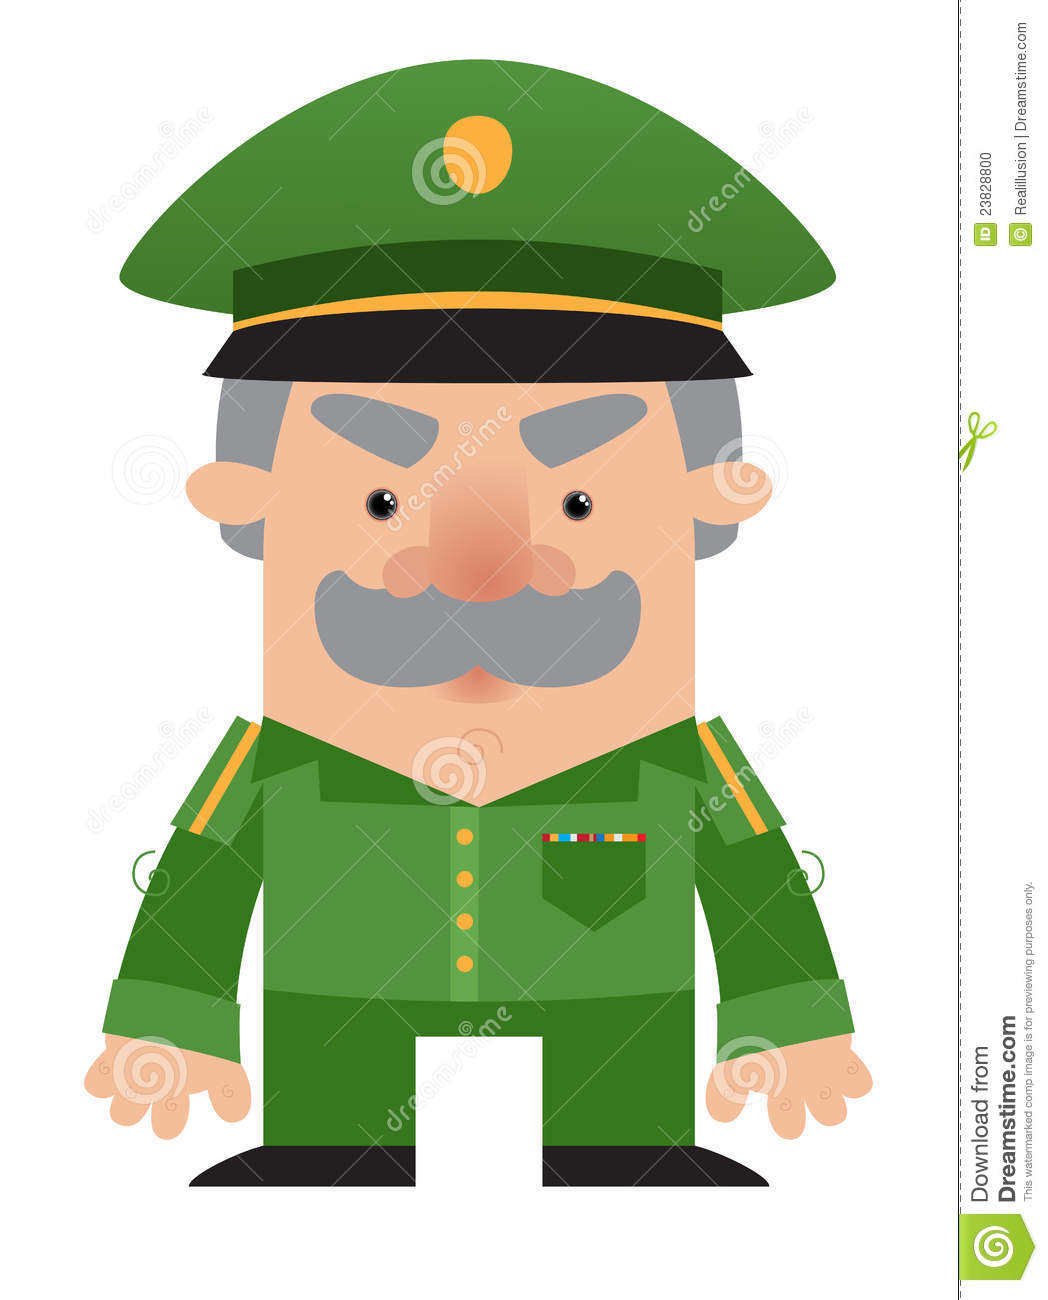 Cartoon Soldier Officer Stock Photo - Image: 23828800